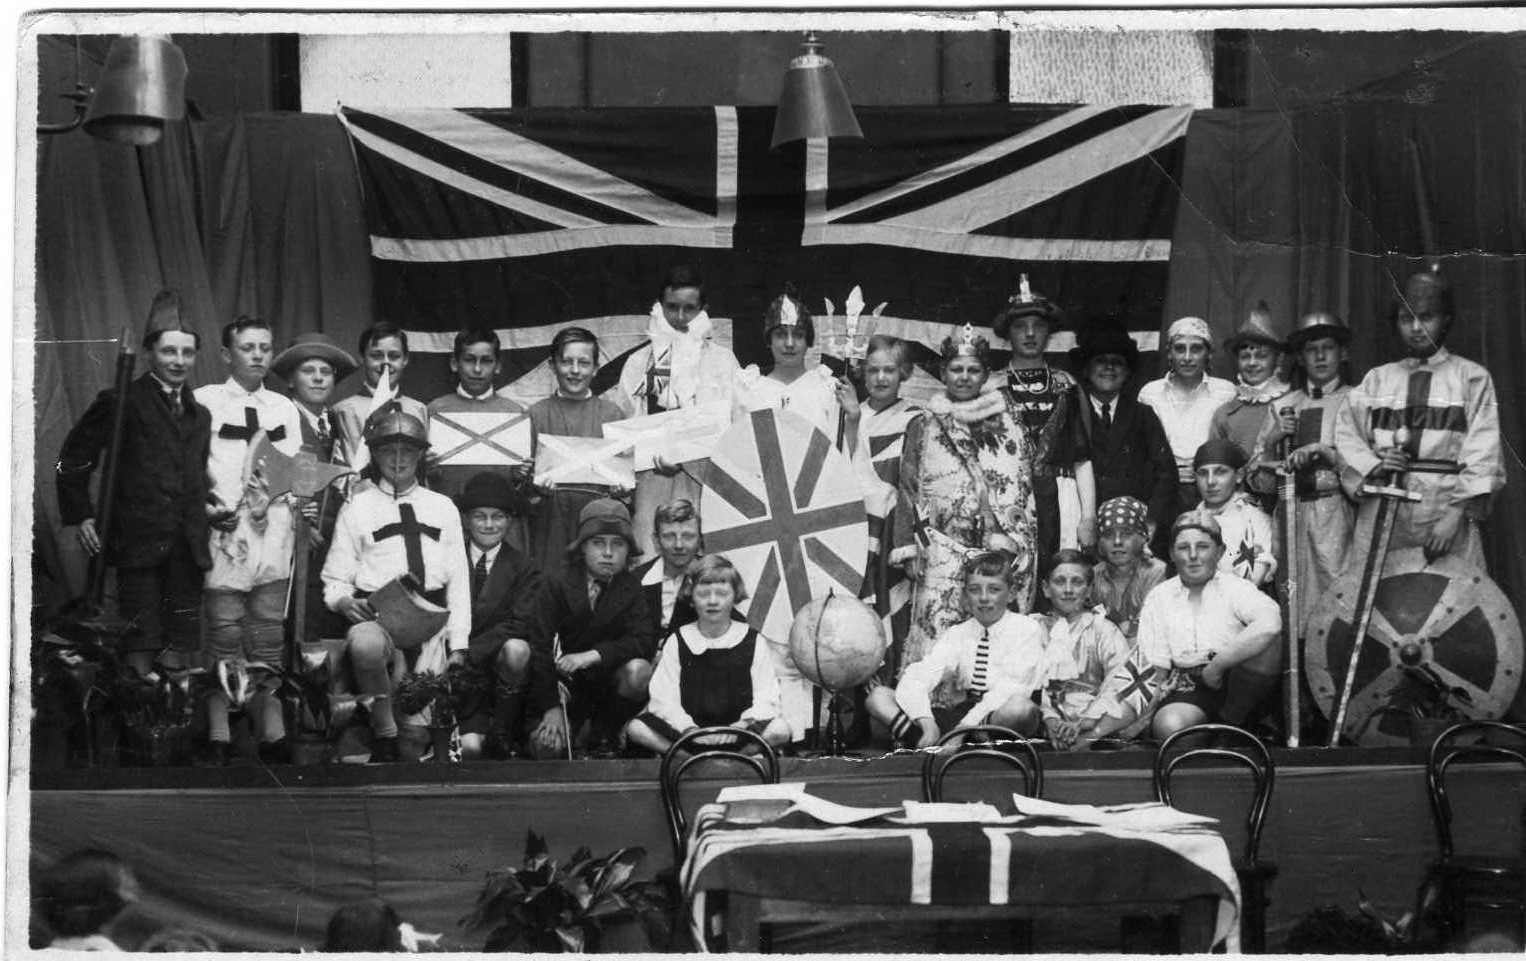 1929 School Play The Empire